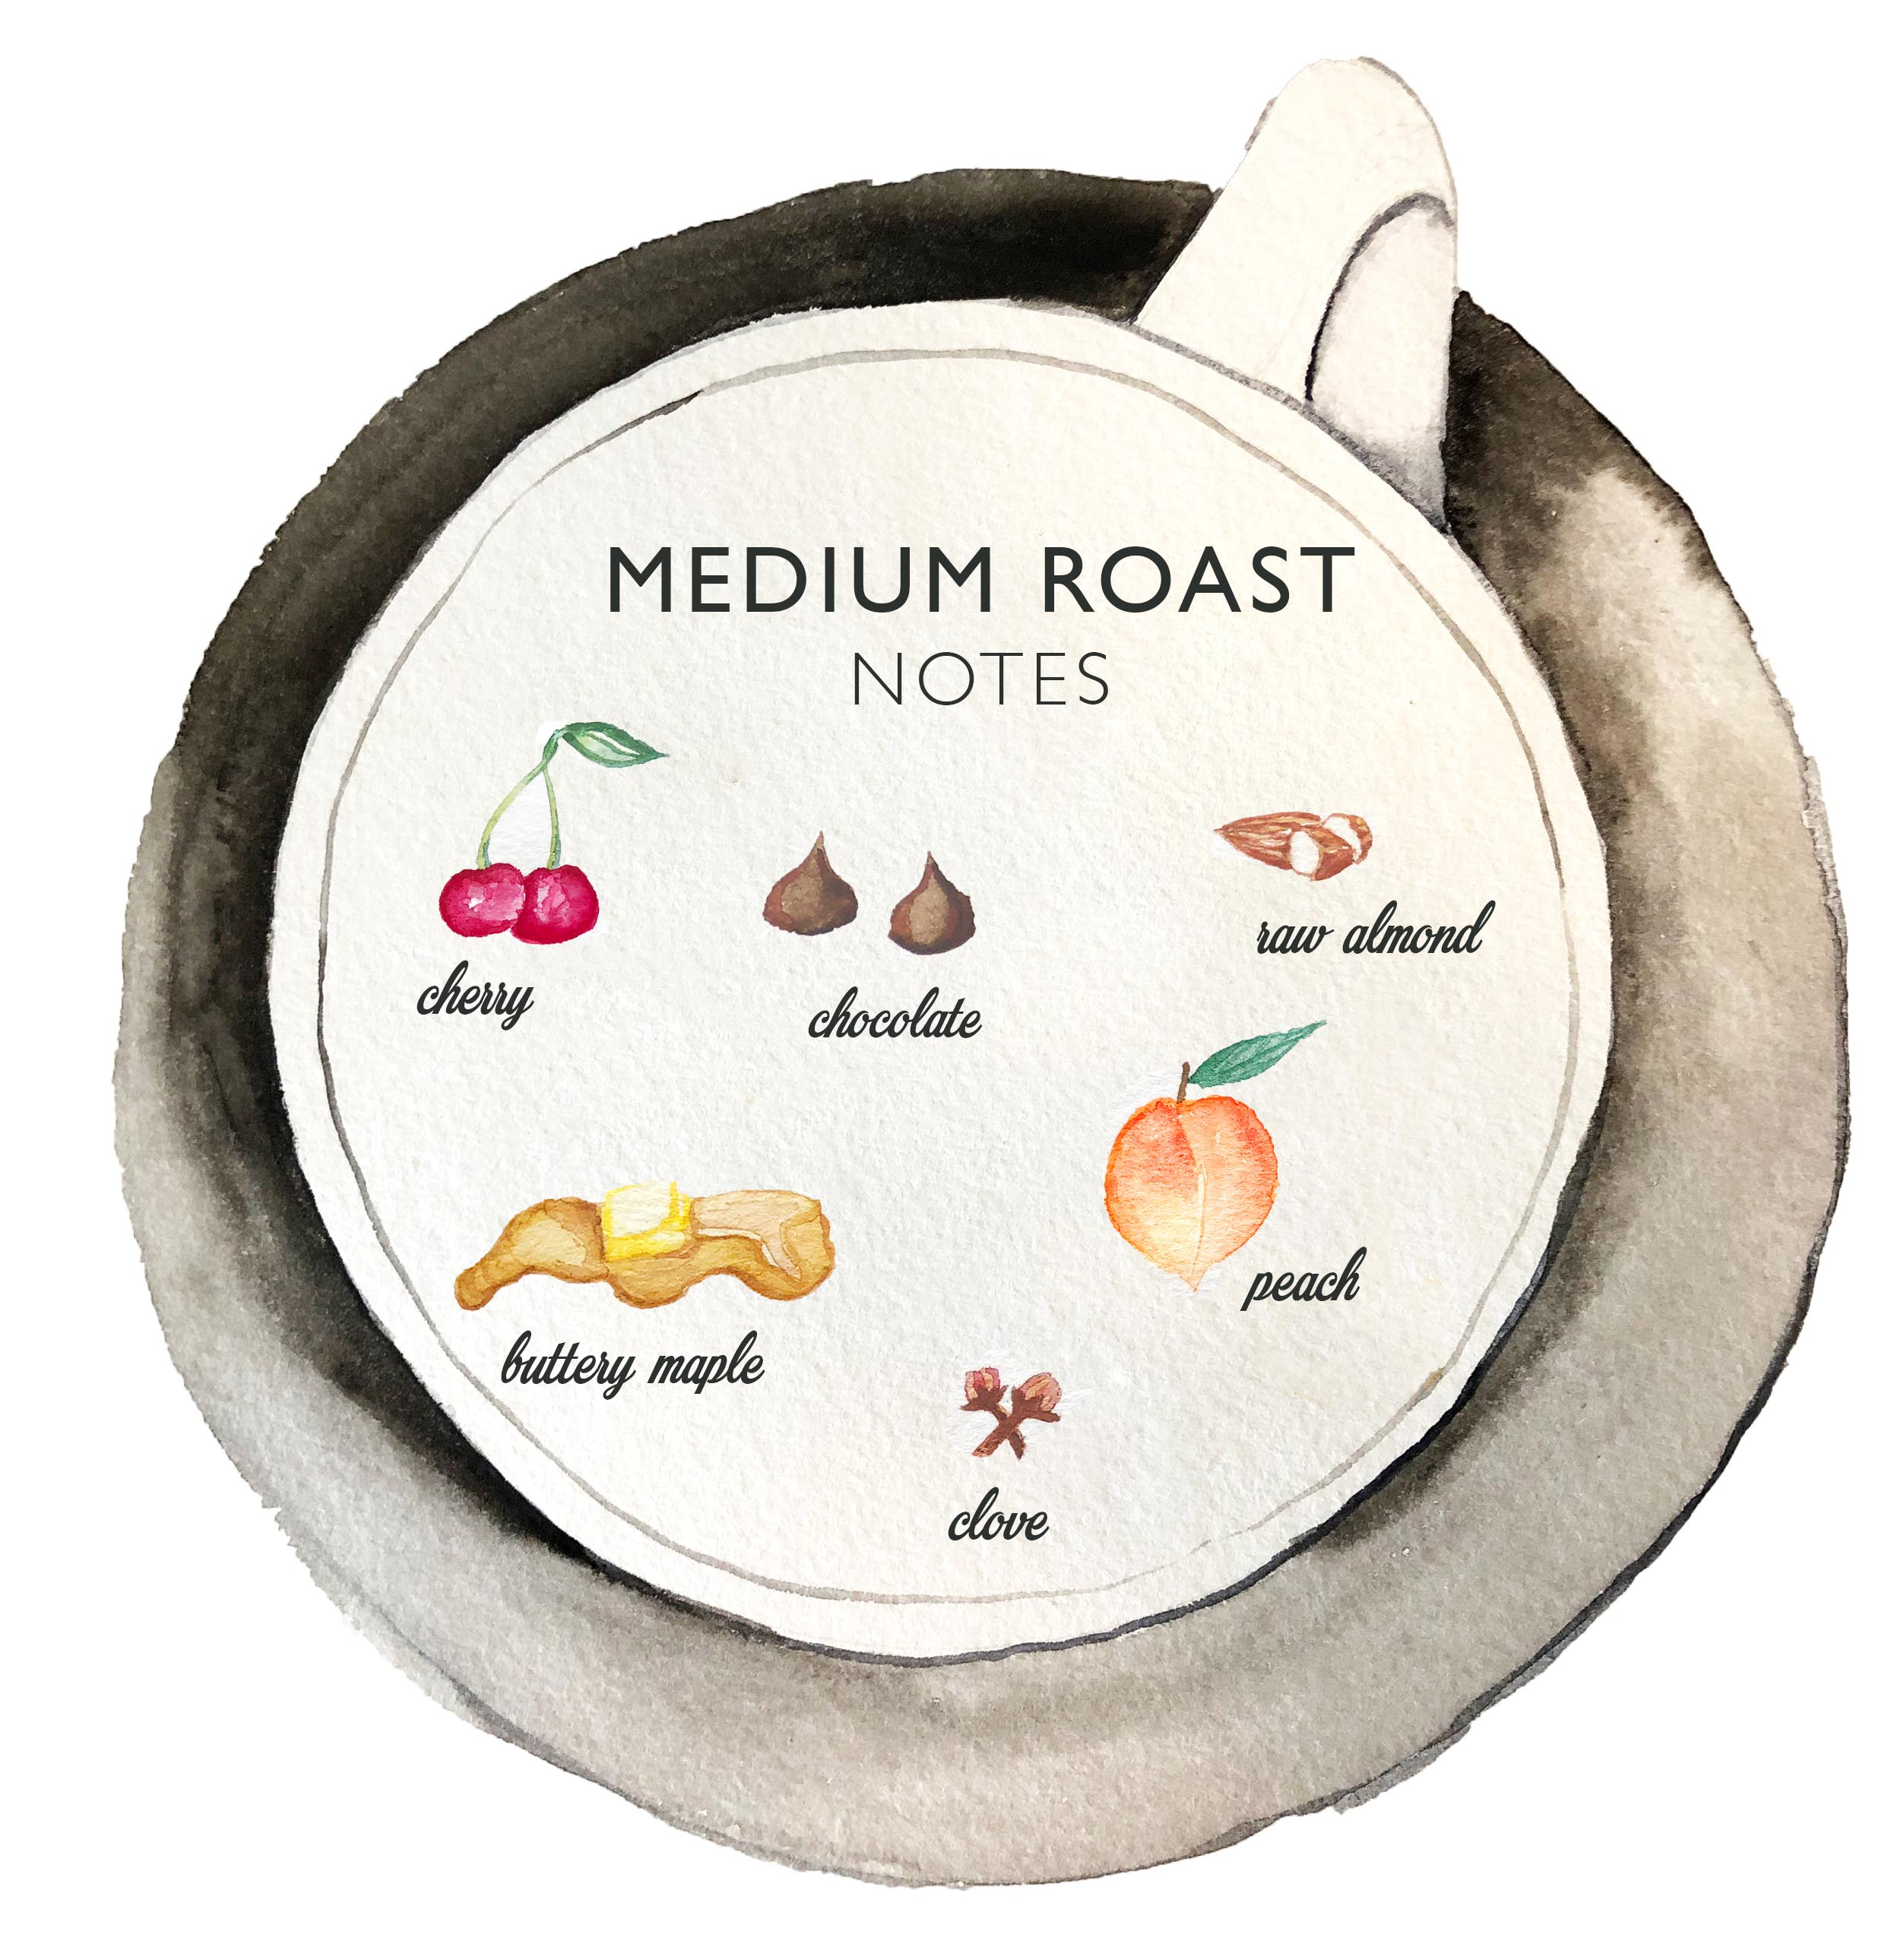 Kona Coffee & Tea's 2019 medium roast has notes of cherry, chocolate, buttery maple, raw almond, peaches, and clove. ART: Dayva Keolanui